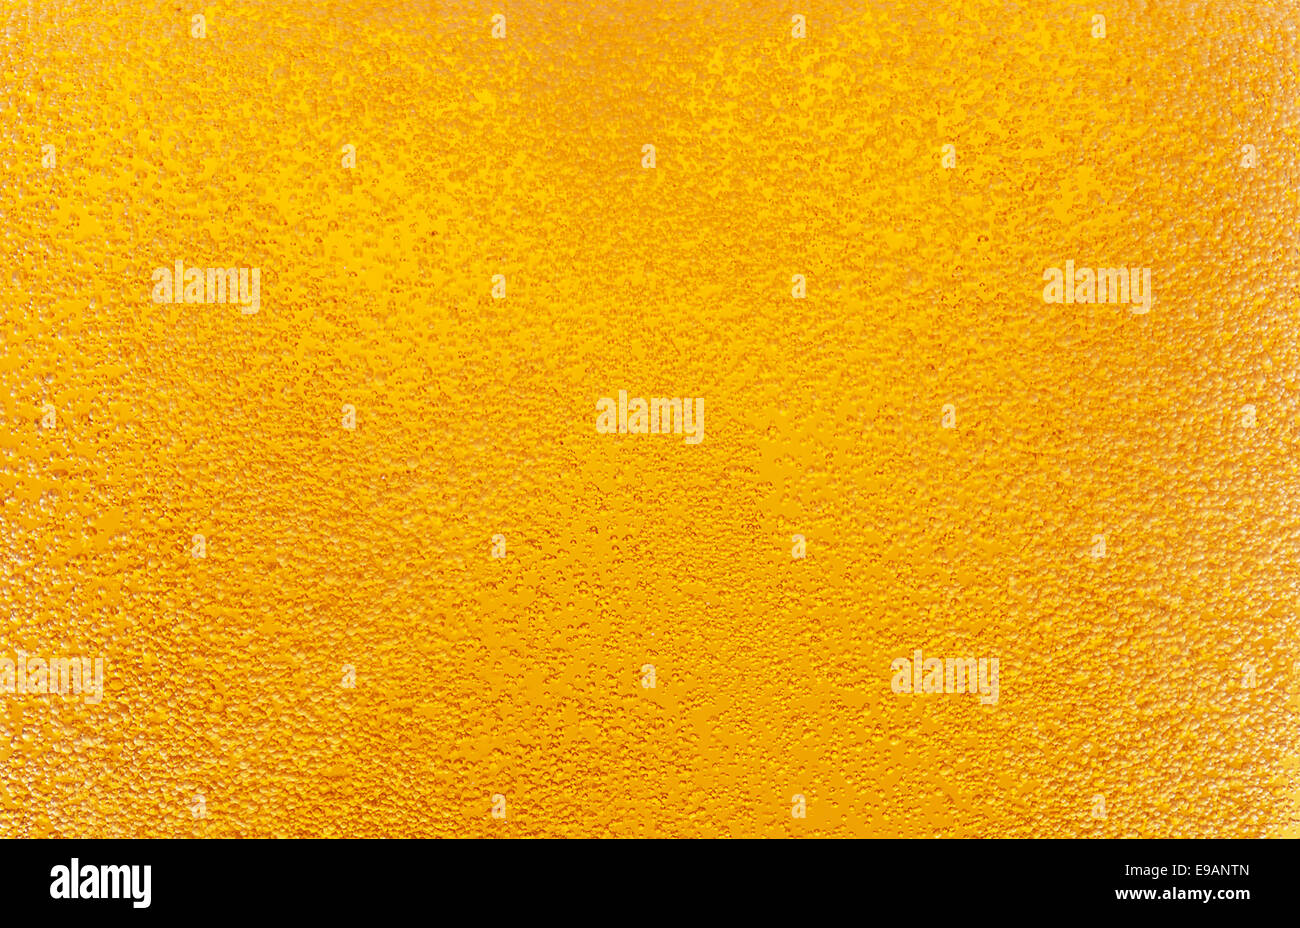 Close-up of golden bubbles in beer. - Stock Image